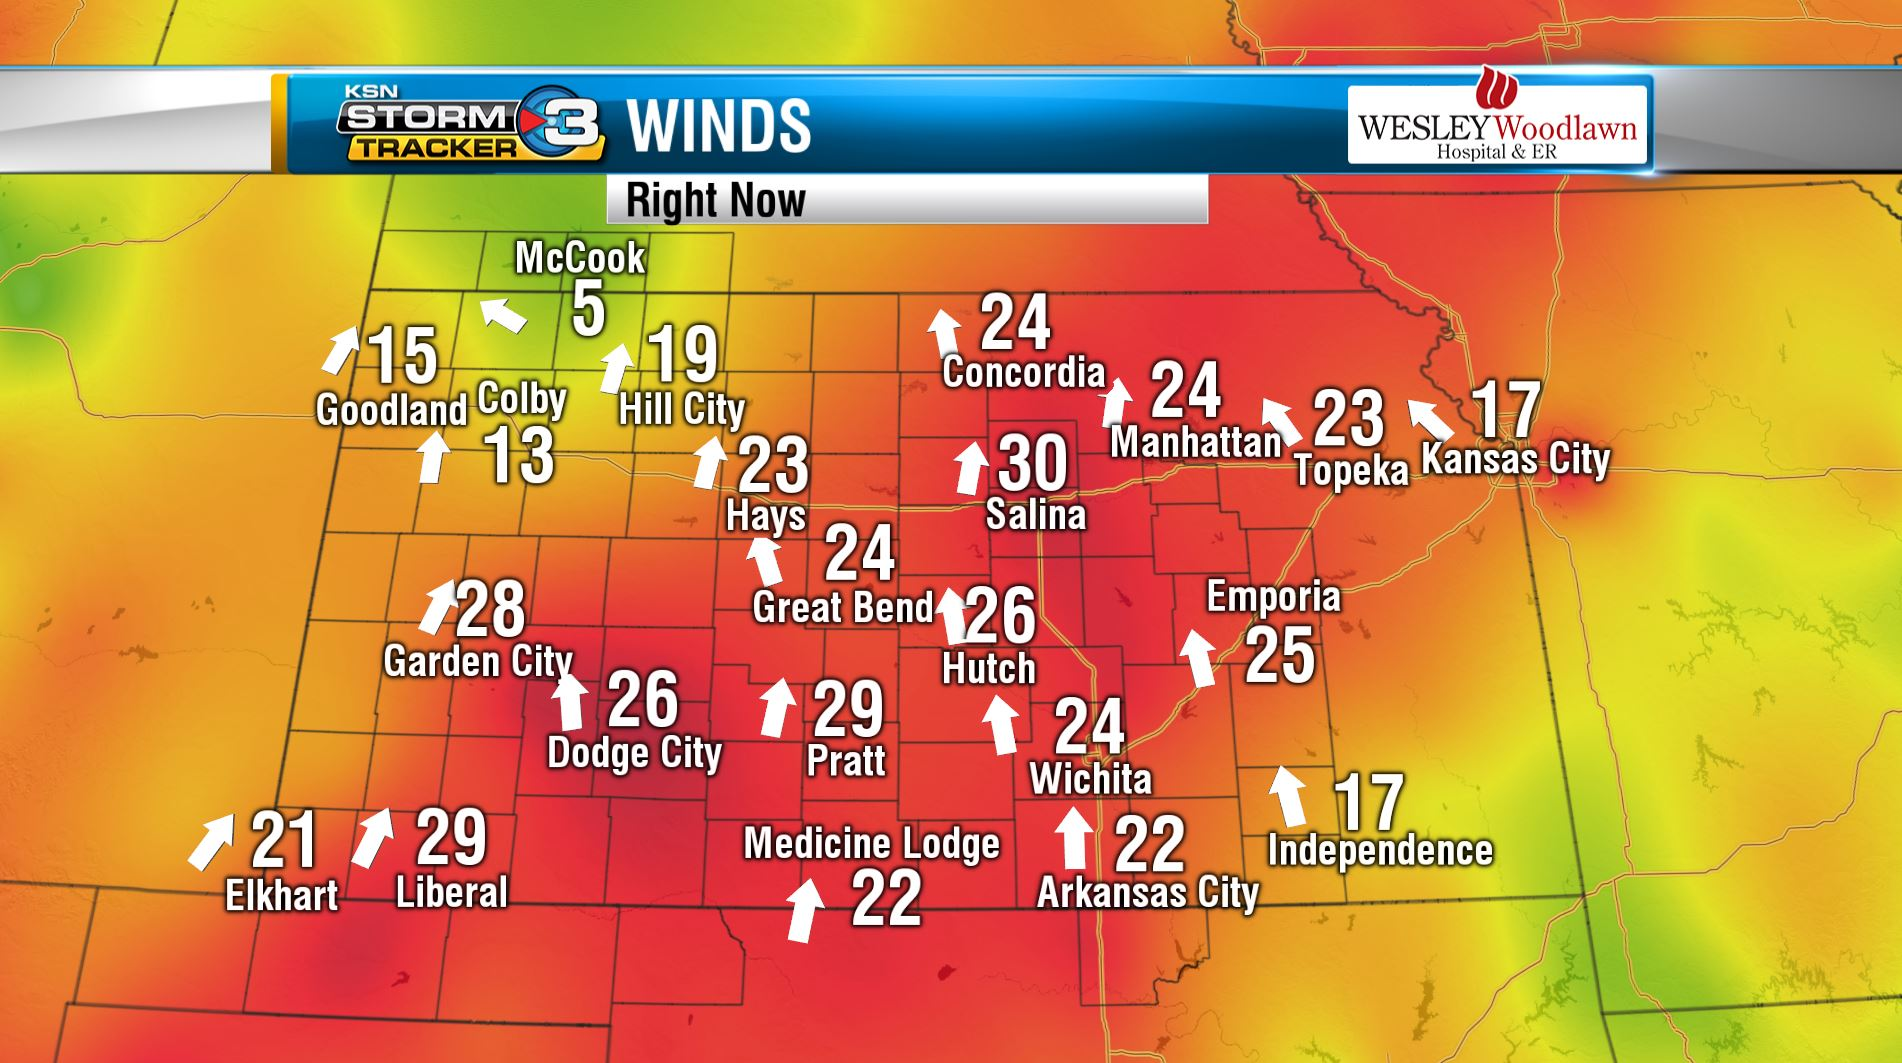 Western's Weather Wrap: Fire Danger & Sunday Storms